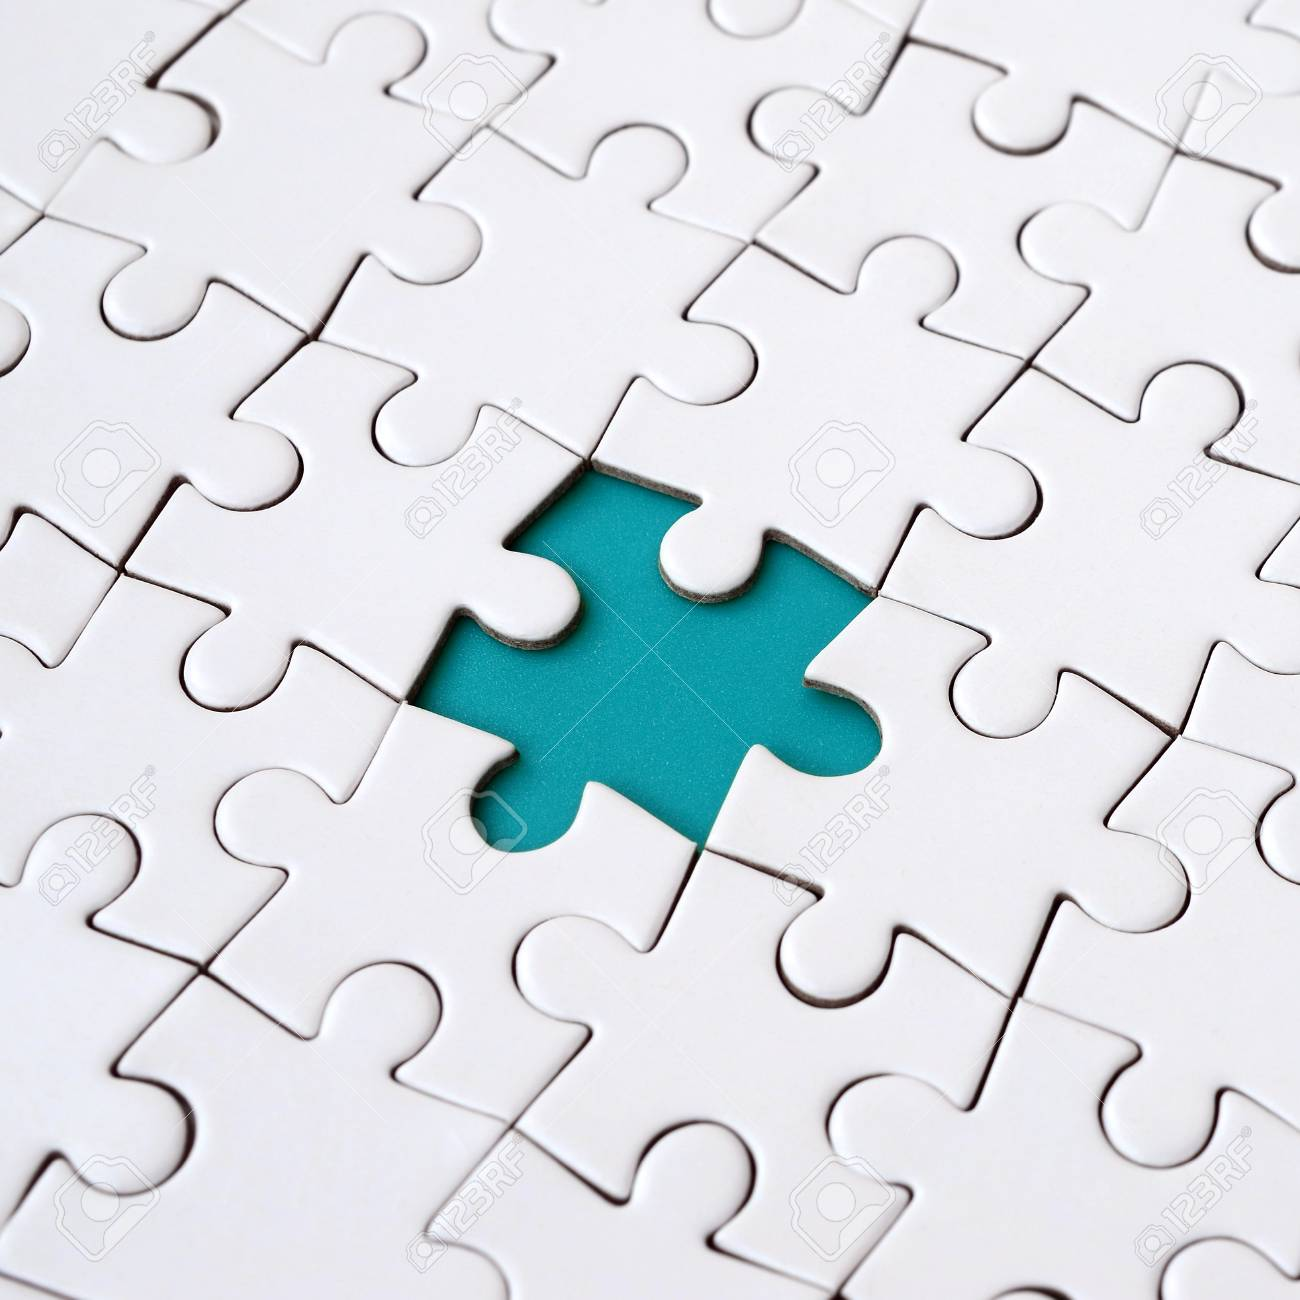 Close Up Texture Of A White Jigsaw Puzzle Inembled State With Missing Elements Forming